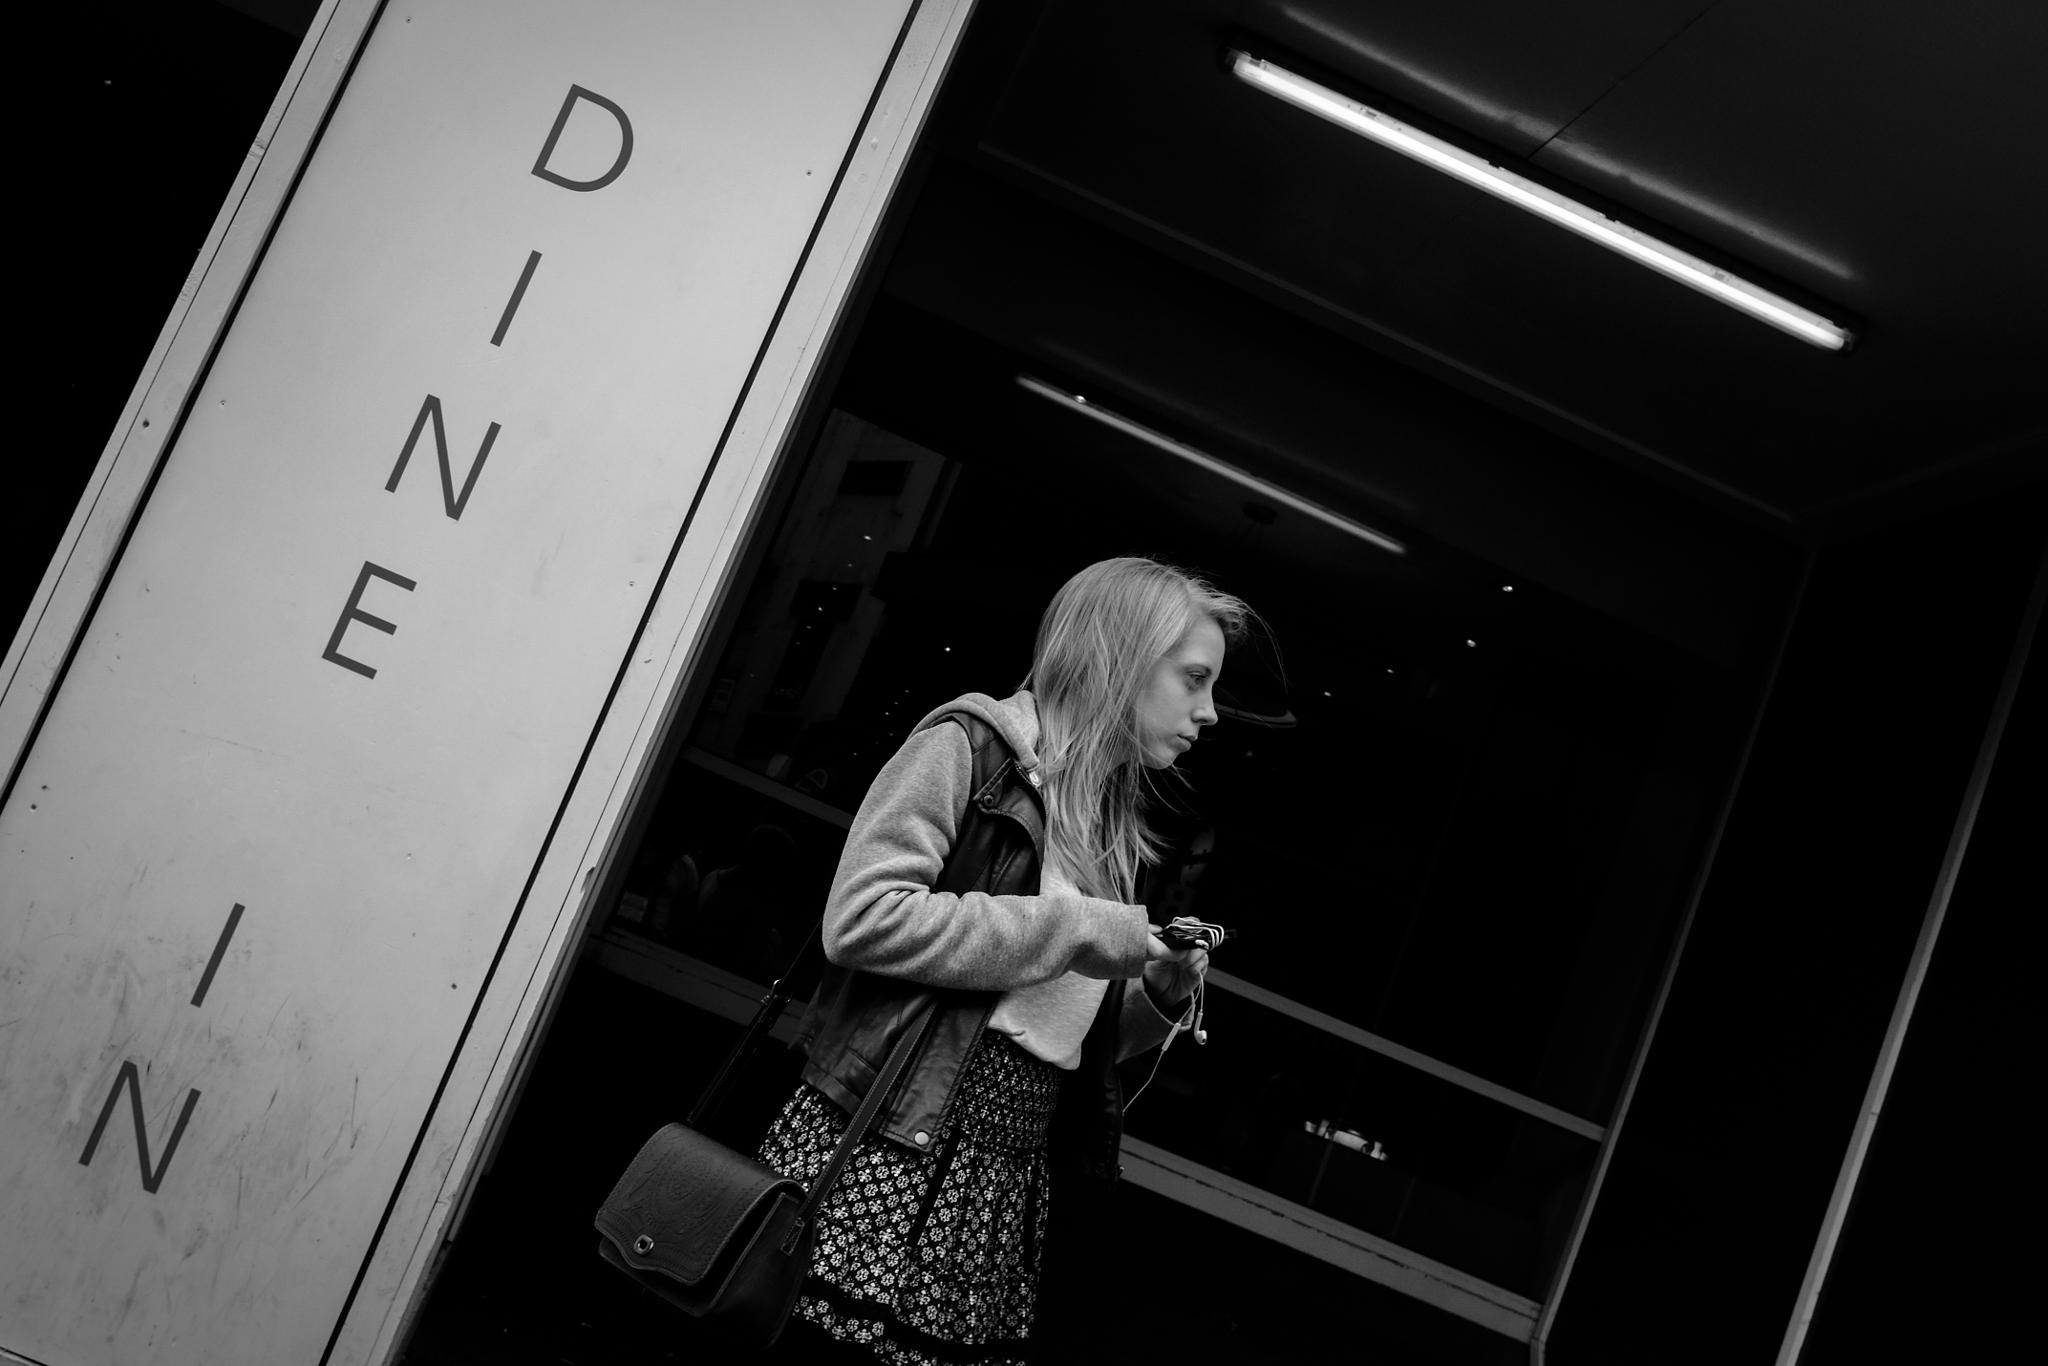 Dine In by lukemailey